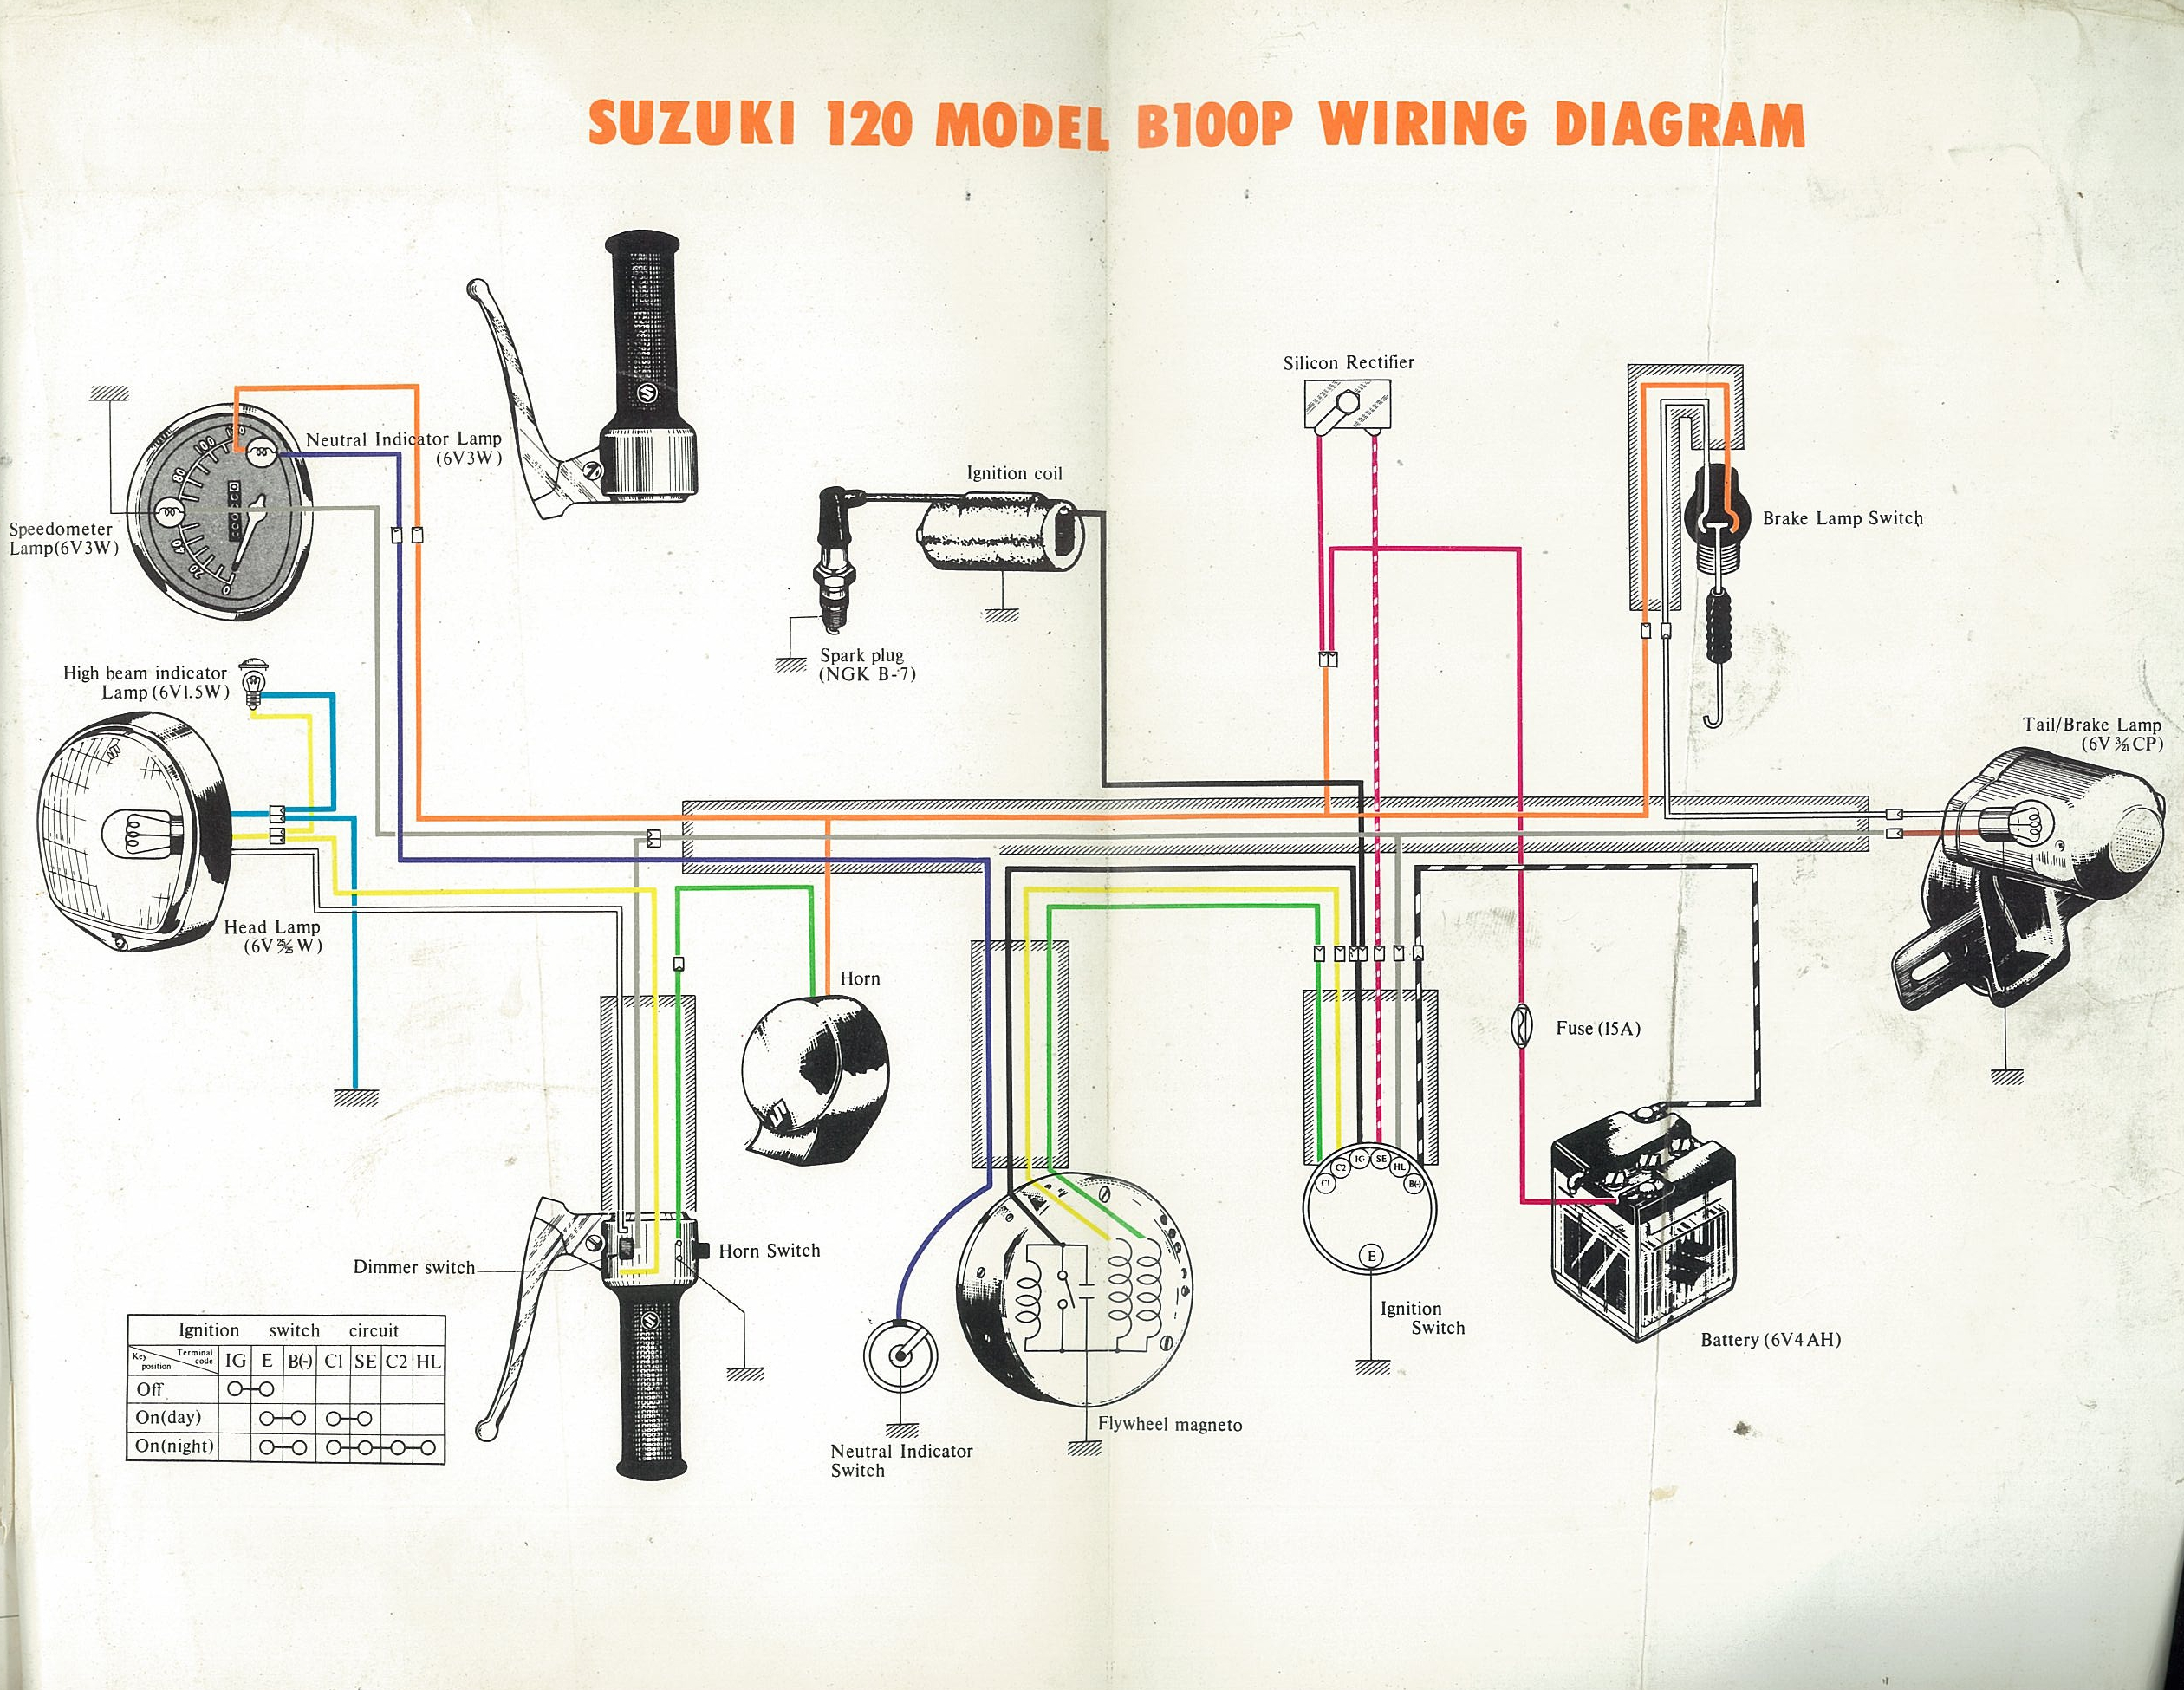 suzuki k15 wiring diagram suzuki wiring diagrams online suzuki access engine diagram suzuki wiring diagrams